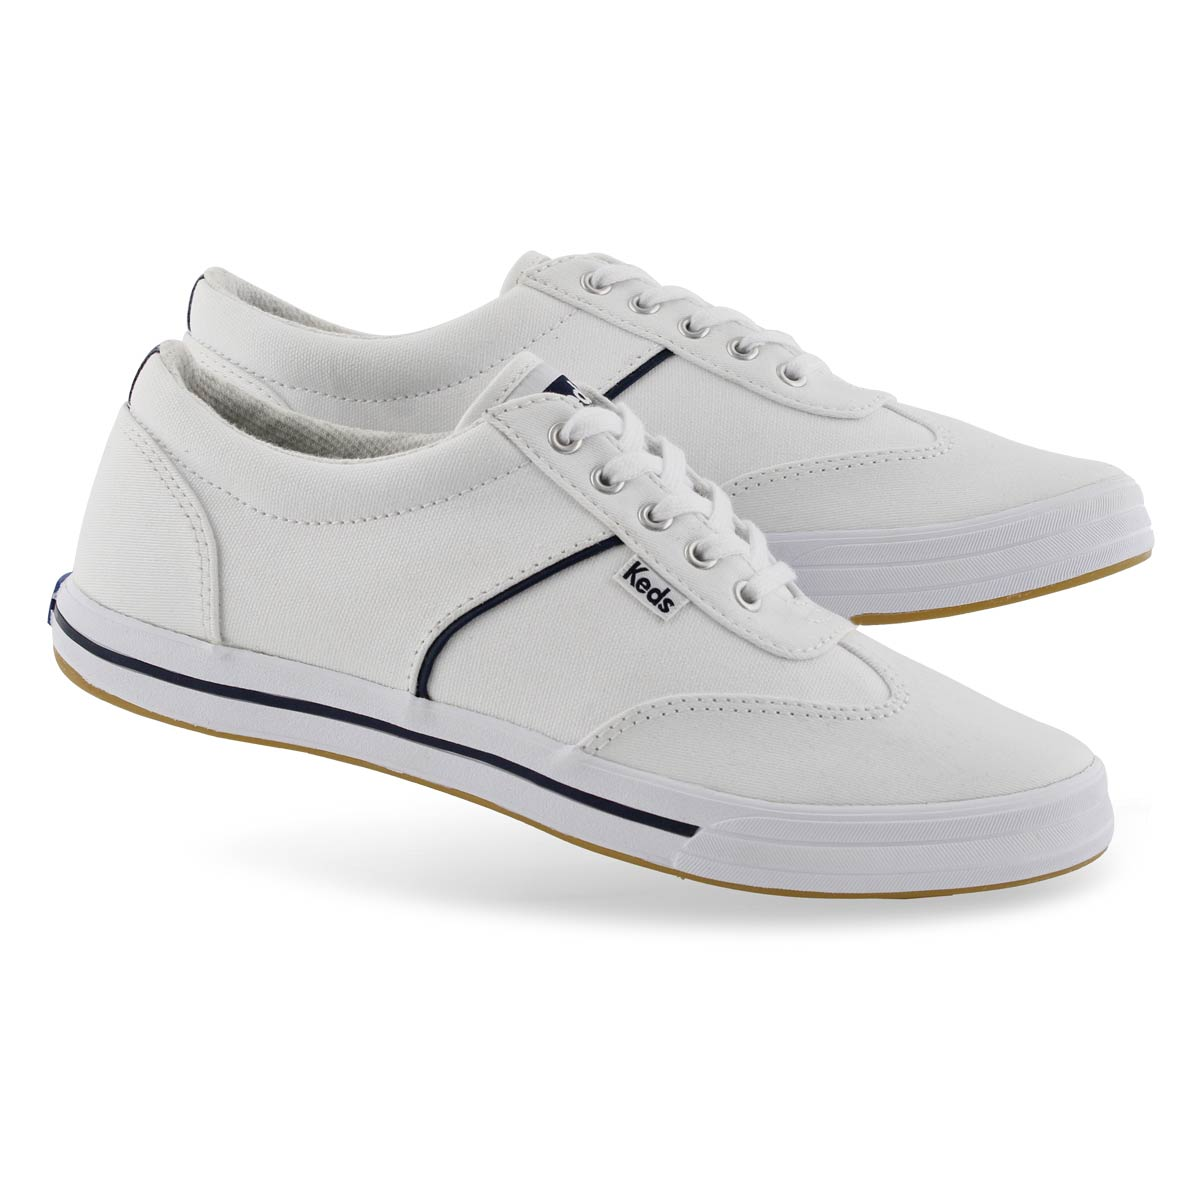 Lds Courty white sneaker